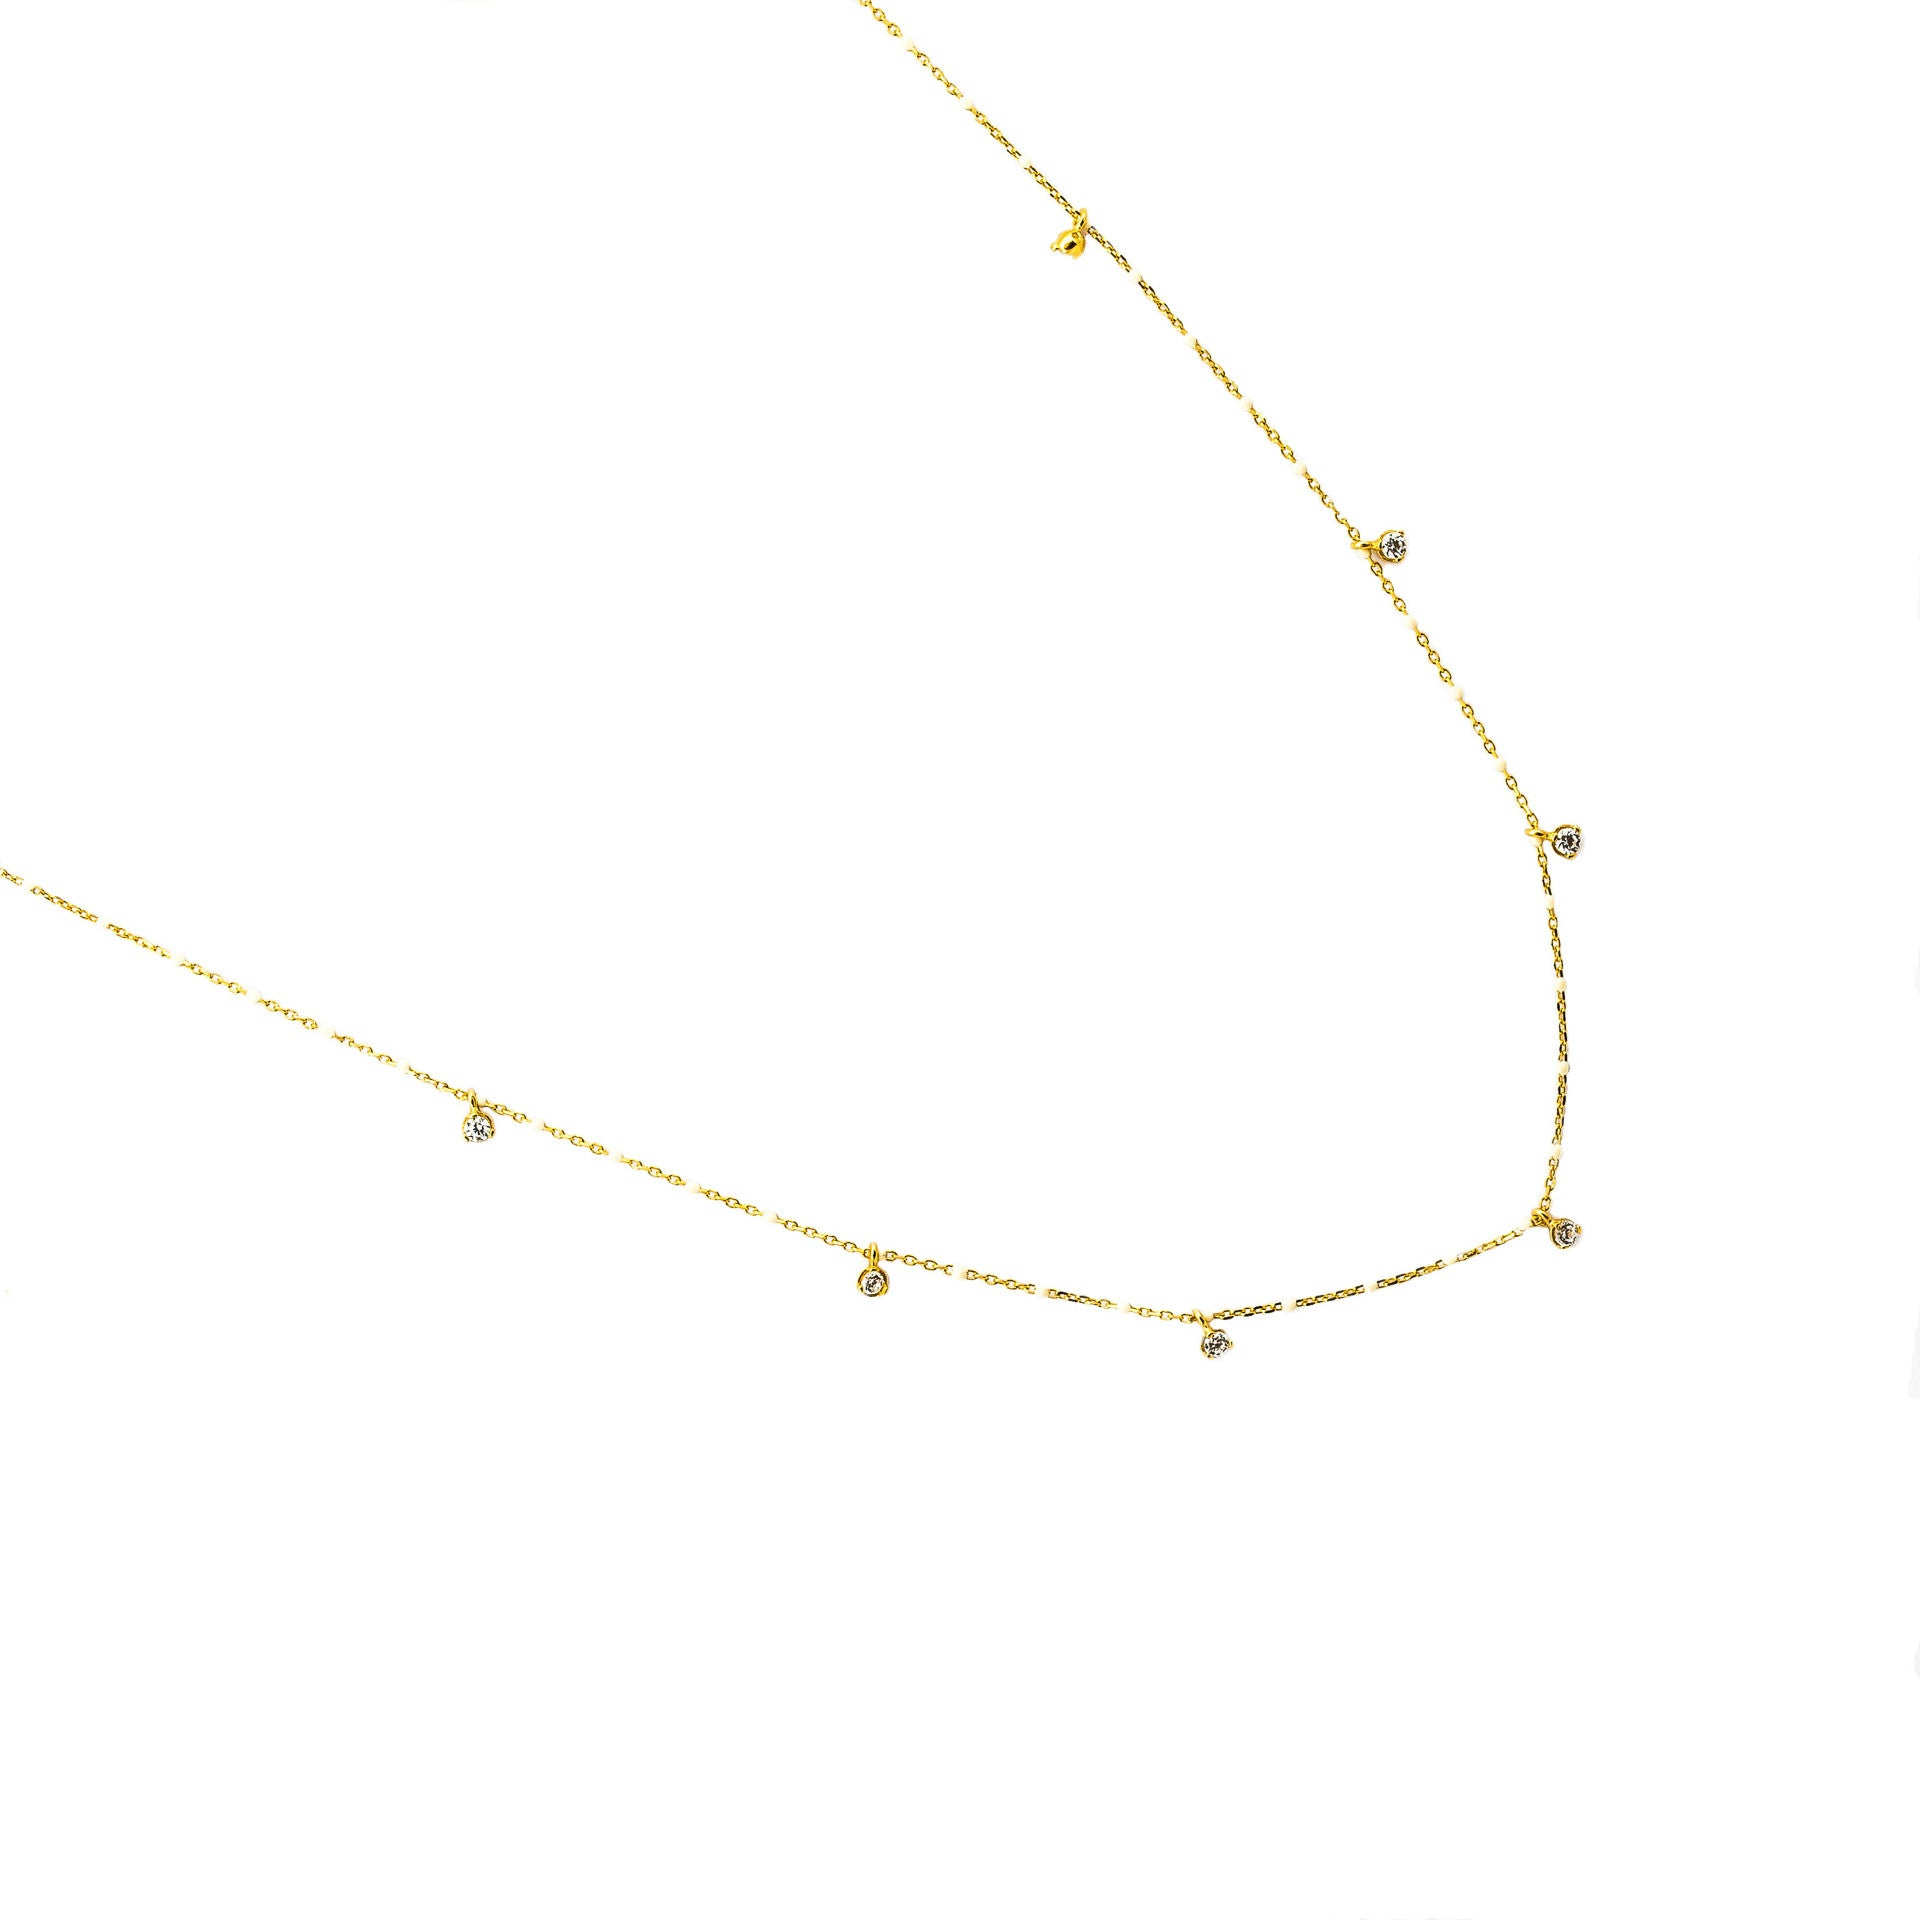 GOLD VERMEIL ENAMEL WITH STATIONED CHARM NECKLACE (WHITE)